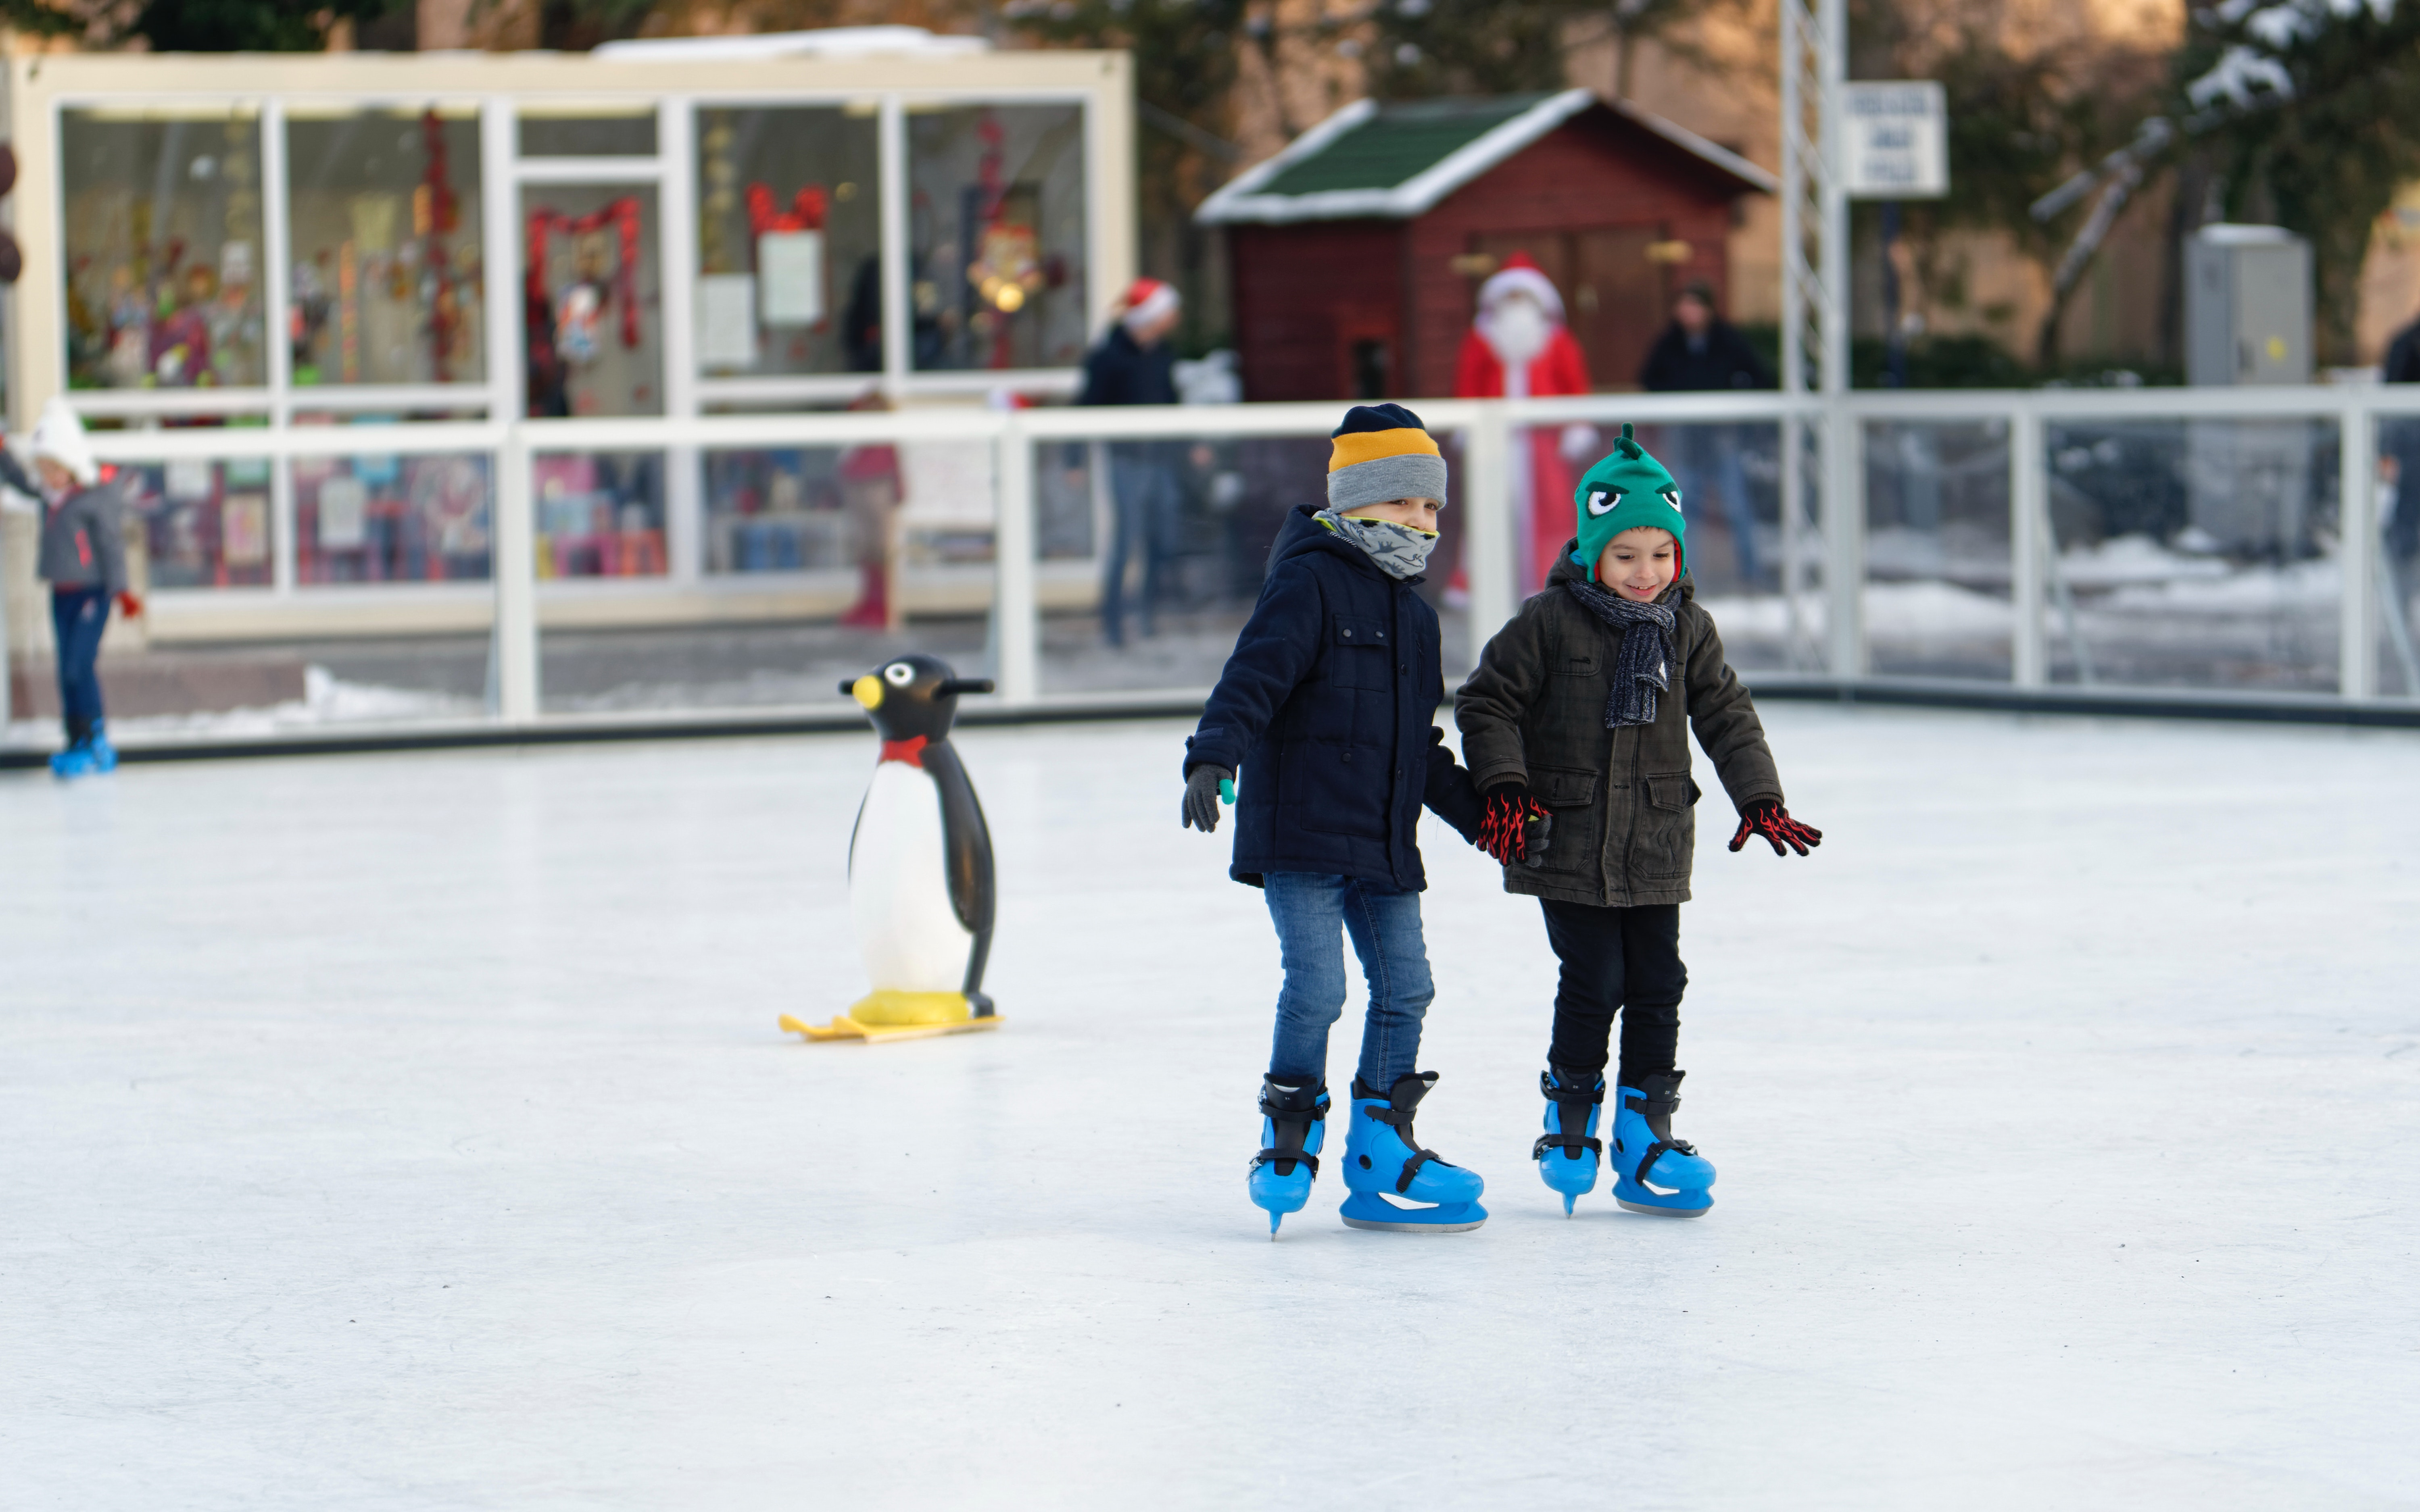 two-children-inside-of-ice-skating-field-1722444